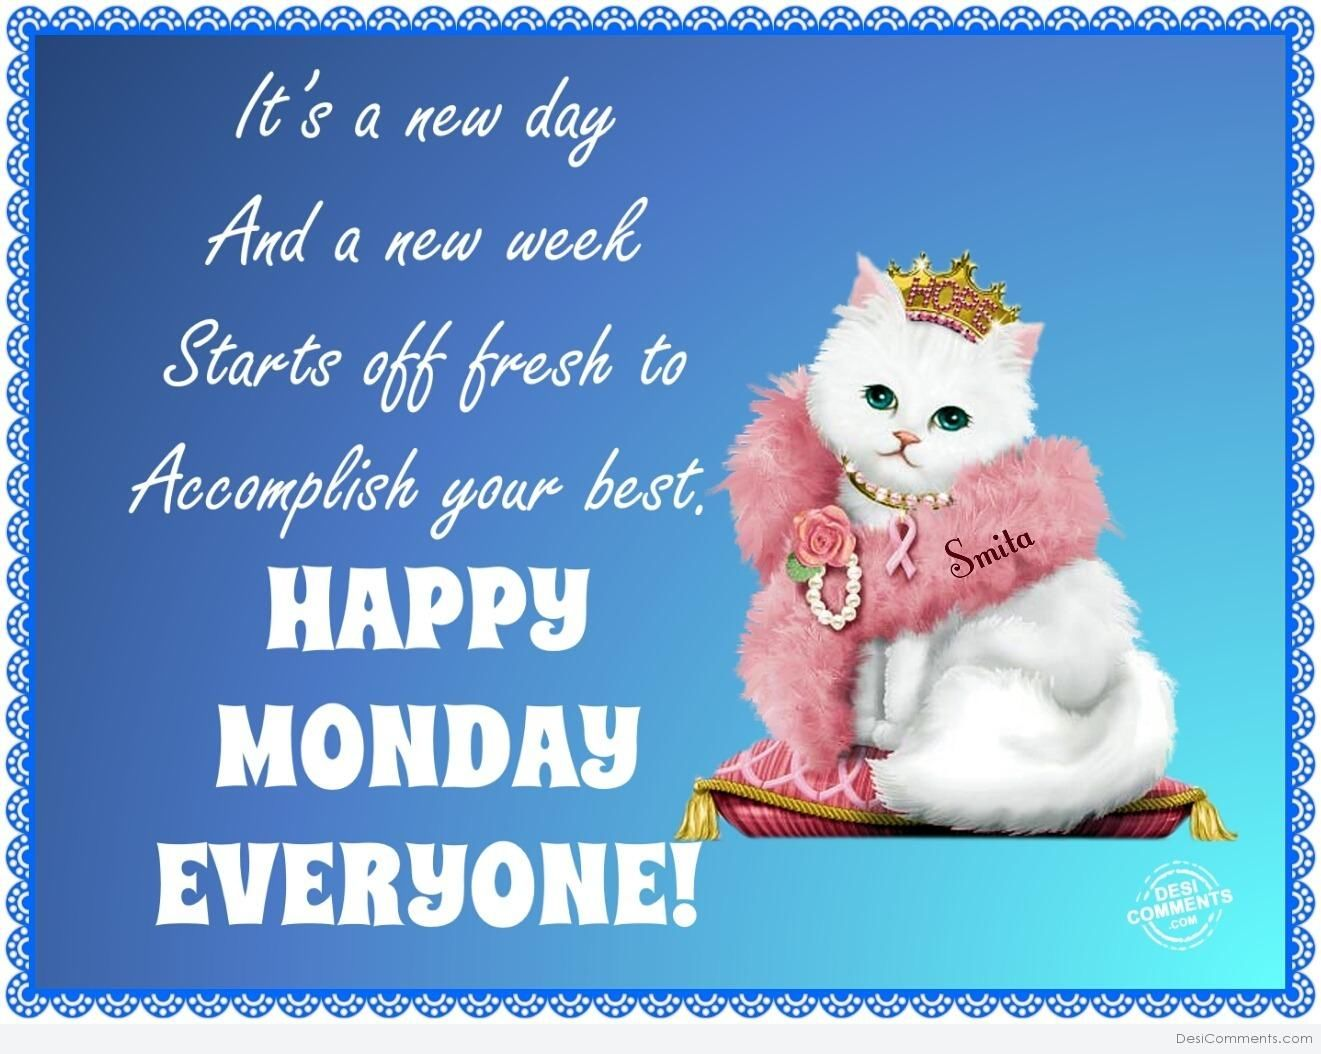 Happy monday everyone pictures photos and images for facebook happy monday everyone m4hsunfo Image collections